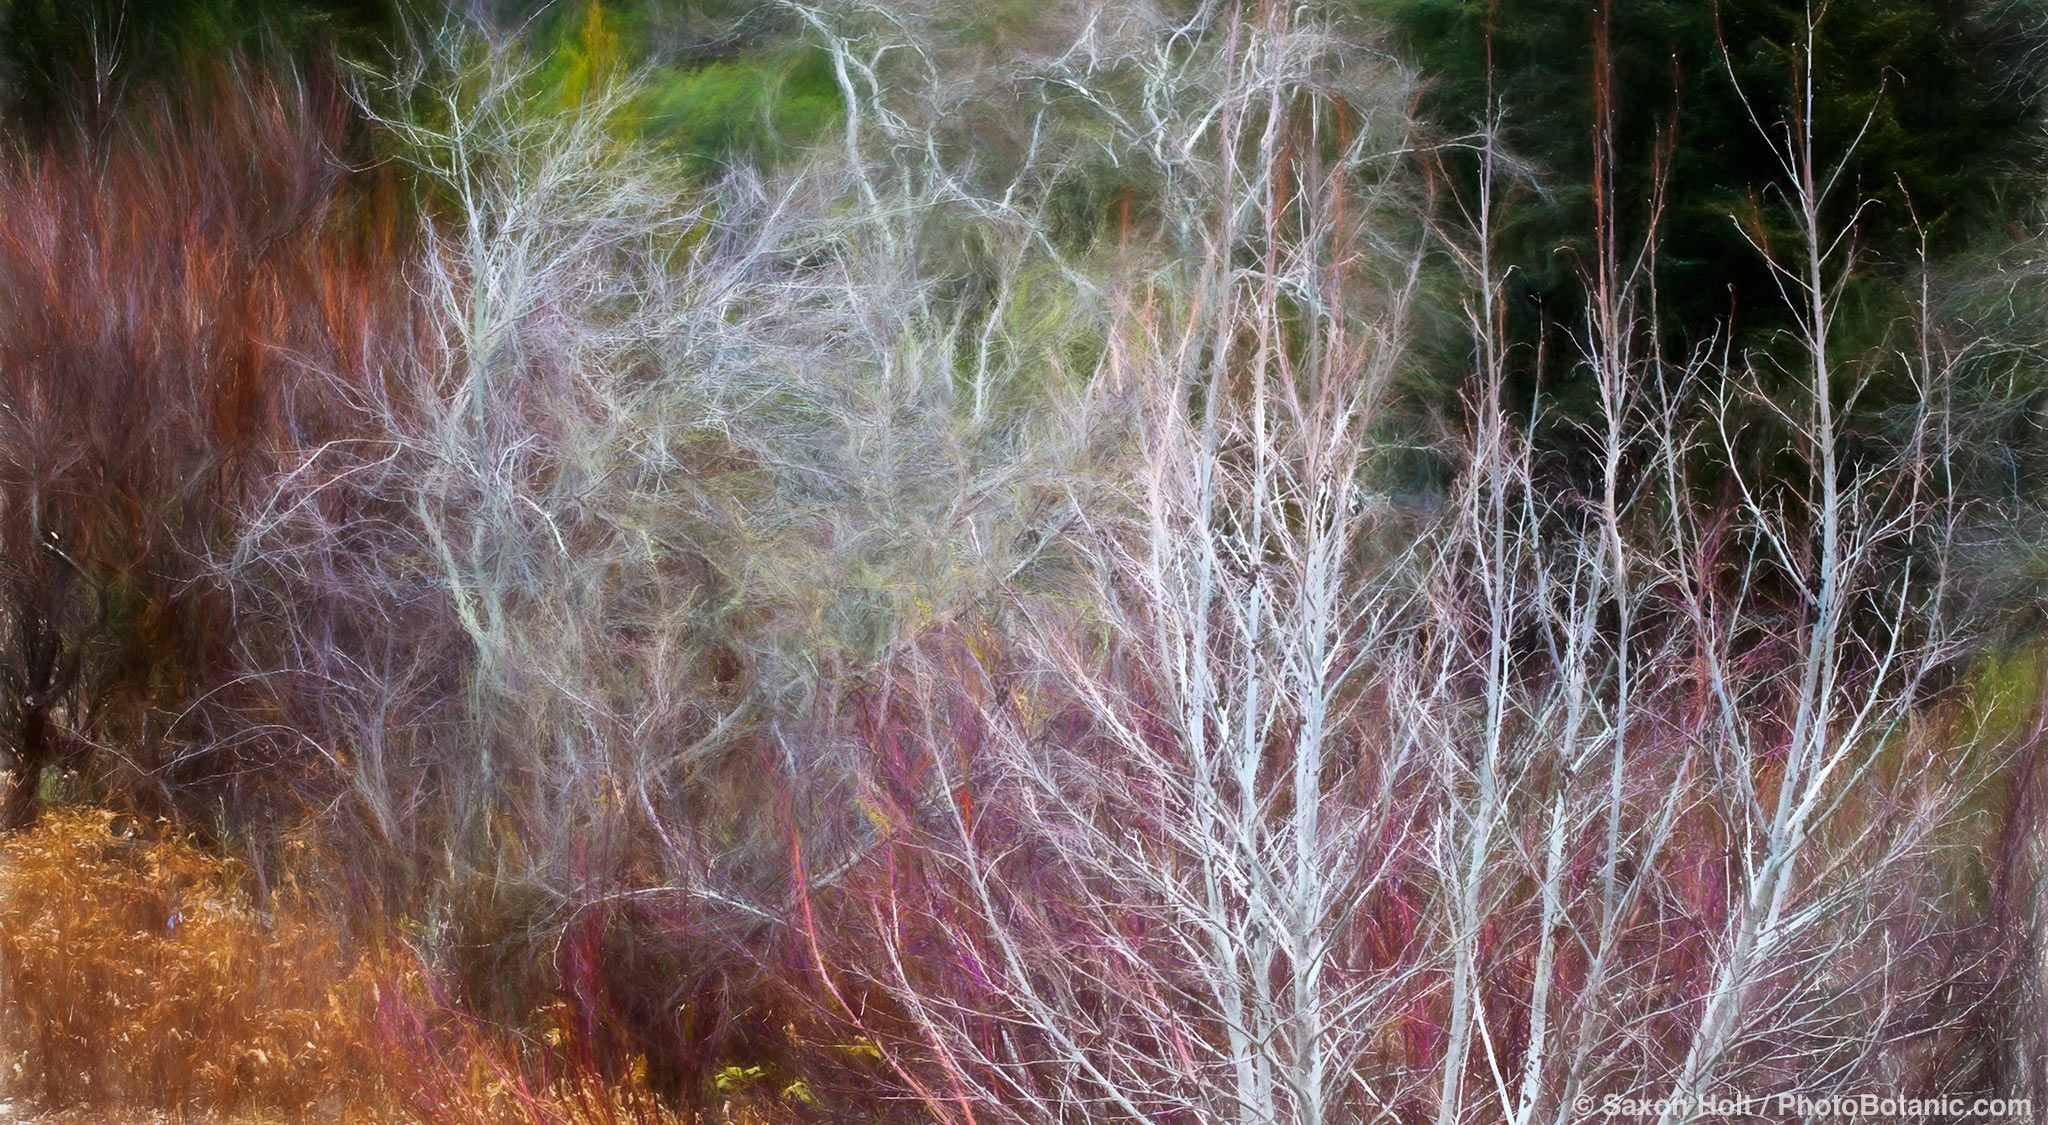 Alnus tenuifolia - Mountain Alder; California native deciduous small tree, bare branches in winter in shrub border with Cornus